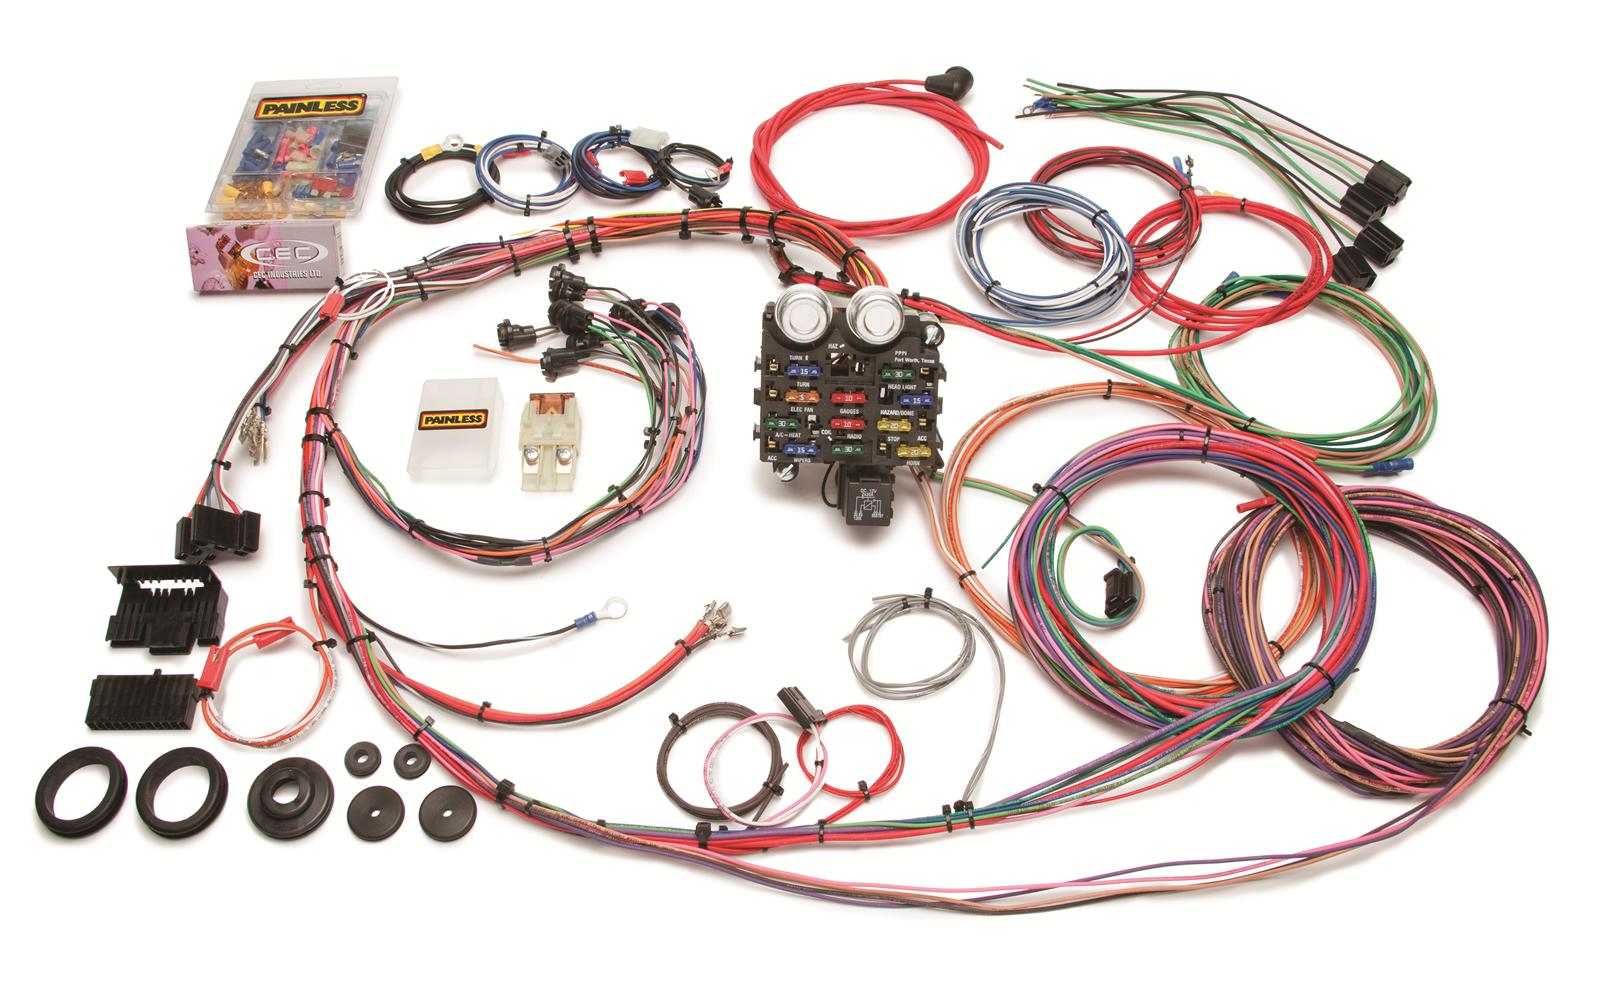 Painless Wiring Harness Chevy Truck Diagrams 66 Nova 10112 12 Circuit Dash Ignition Switch 1972